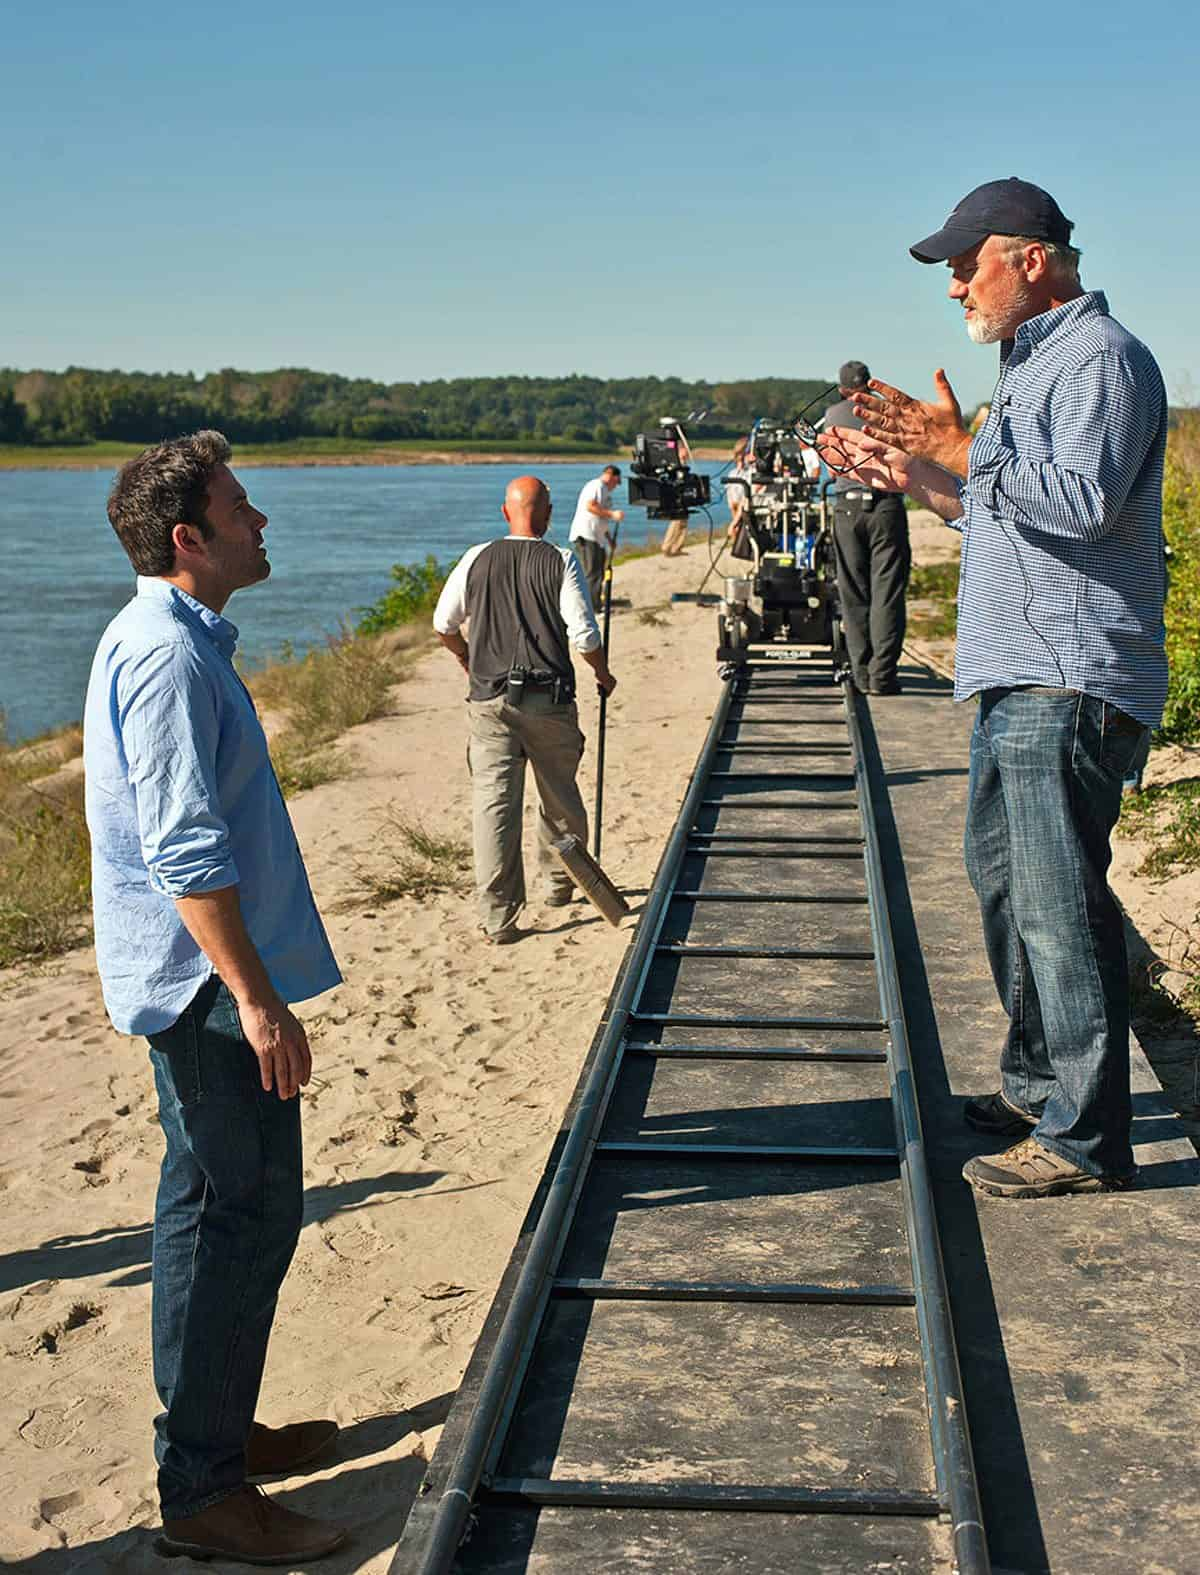 DF-02019_R - Ben Affleck rehearses a scene with director David Fincher on the set of GONE GIRL.